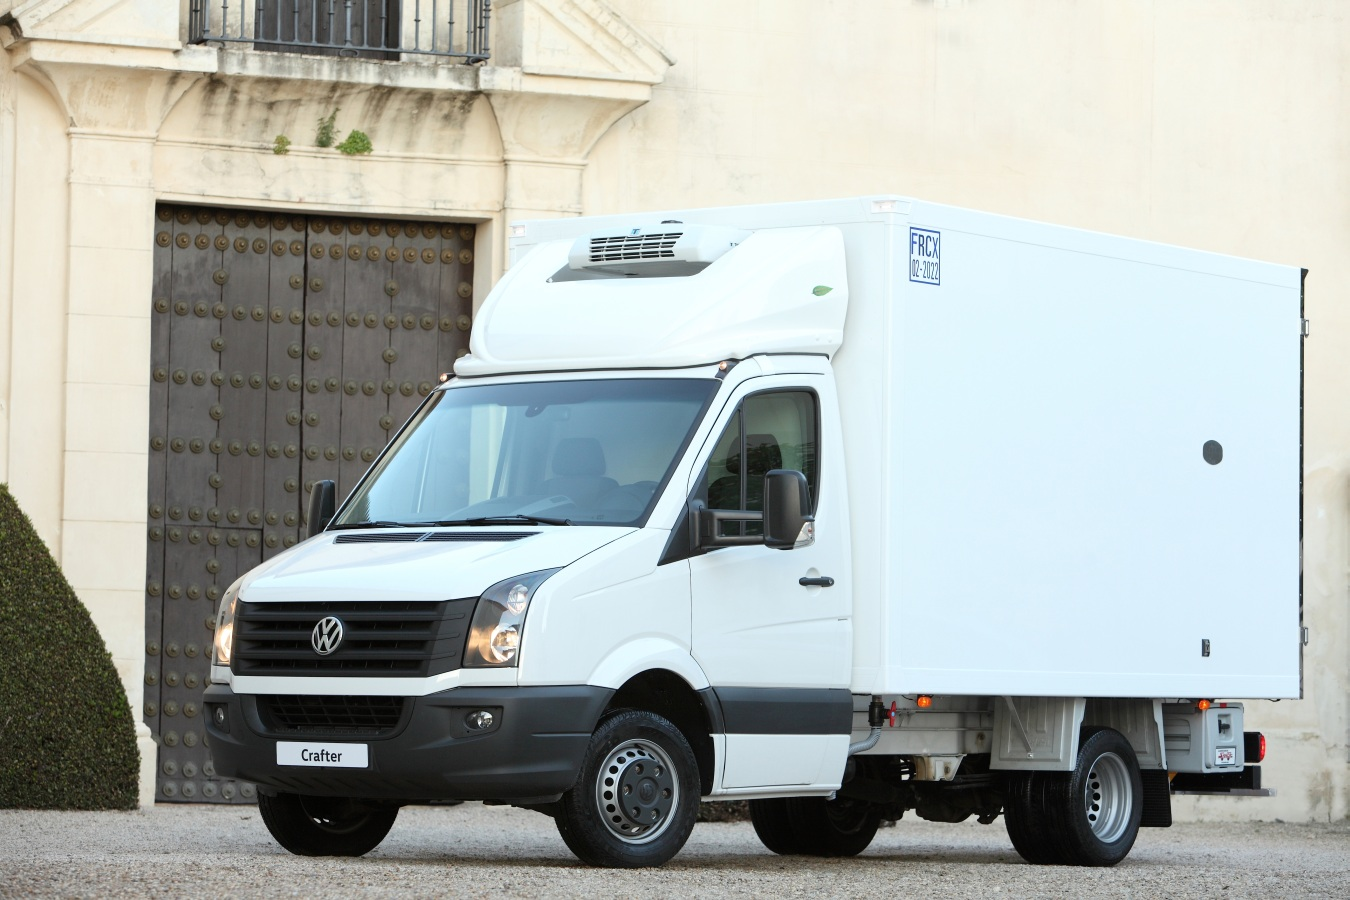 gama-volkswagen-comerciales-caddy-t6-crafter11